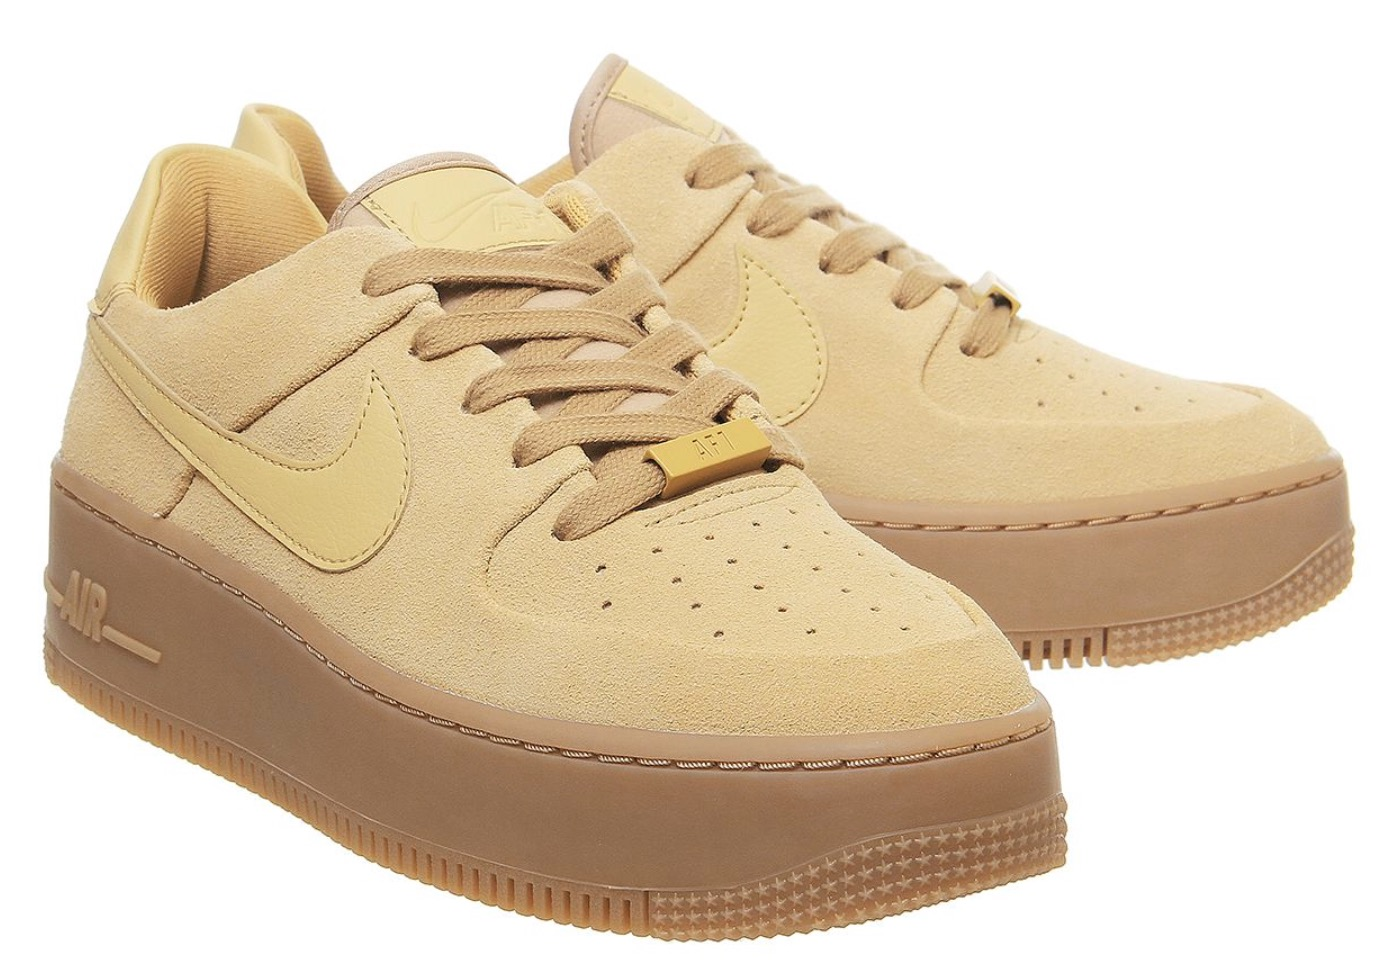 SAVE £20 On The New Nike Air Force 1 Club Gold In Offspring's Sale!